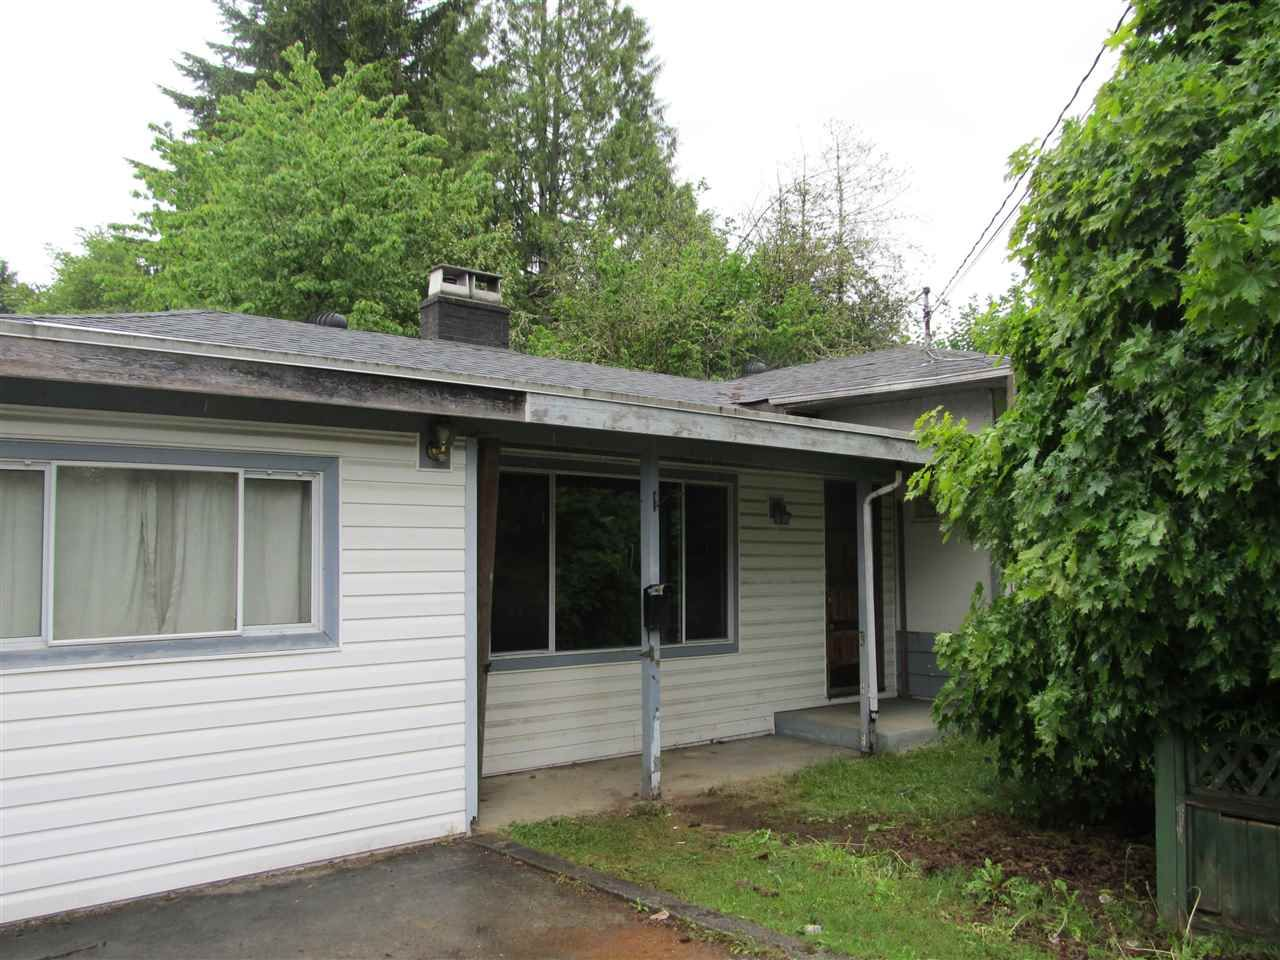 Main Photo: 21311 123 Avenue in Maple Ridge: West Central House for sale : MLS®# R2369717